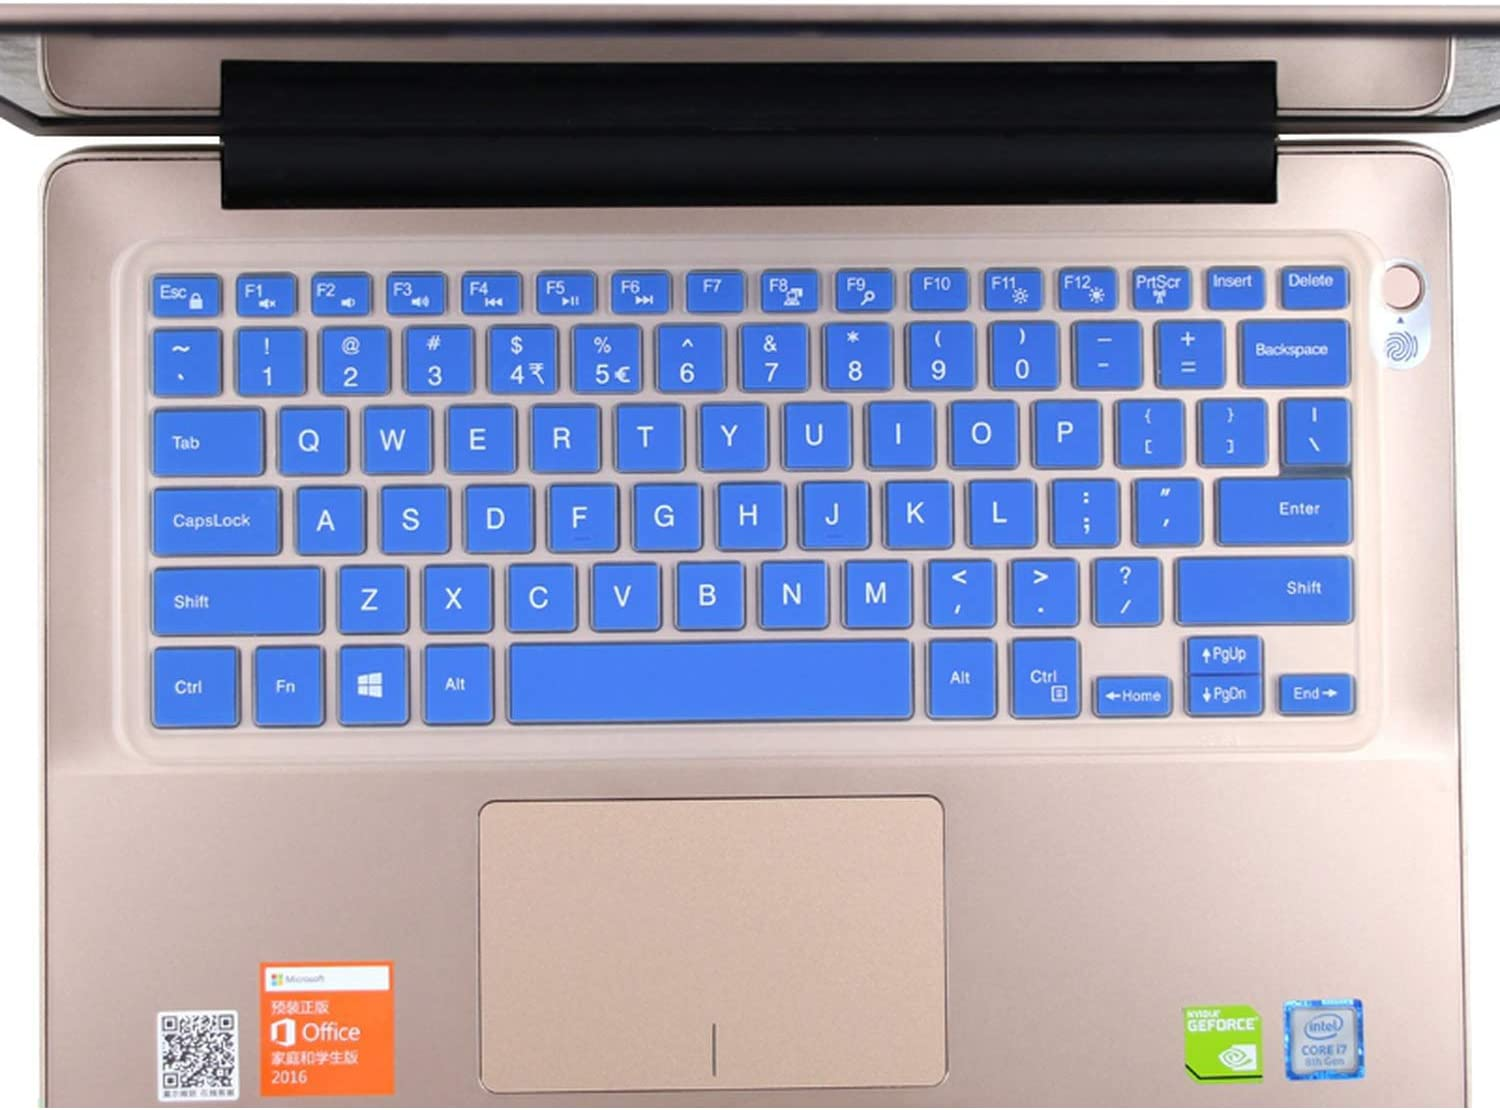 Inspiron 7000 7569 7570 7573-Transparent Silicone Keyboard Cover Skin for Dell Inspiron 15 5582 I5582 5581 5580 5000 5568 5578 5579 5585